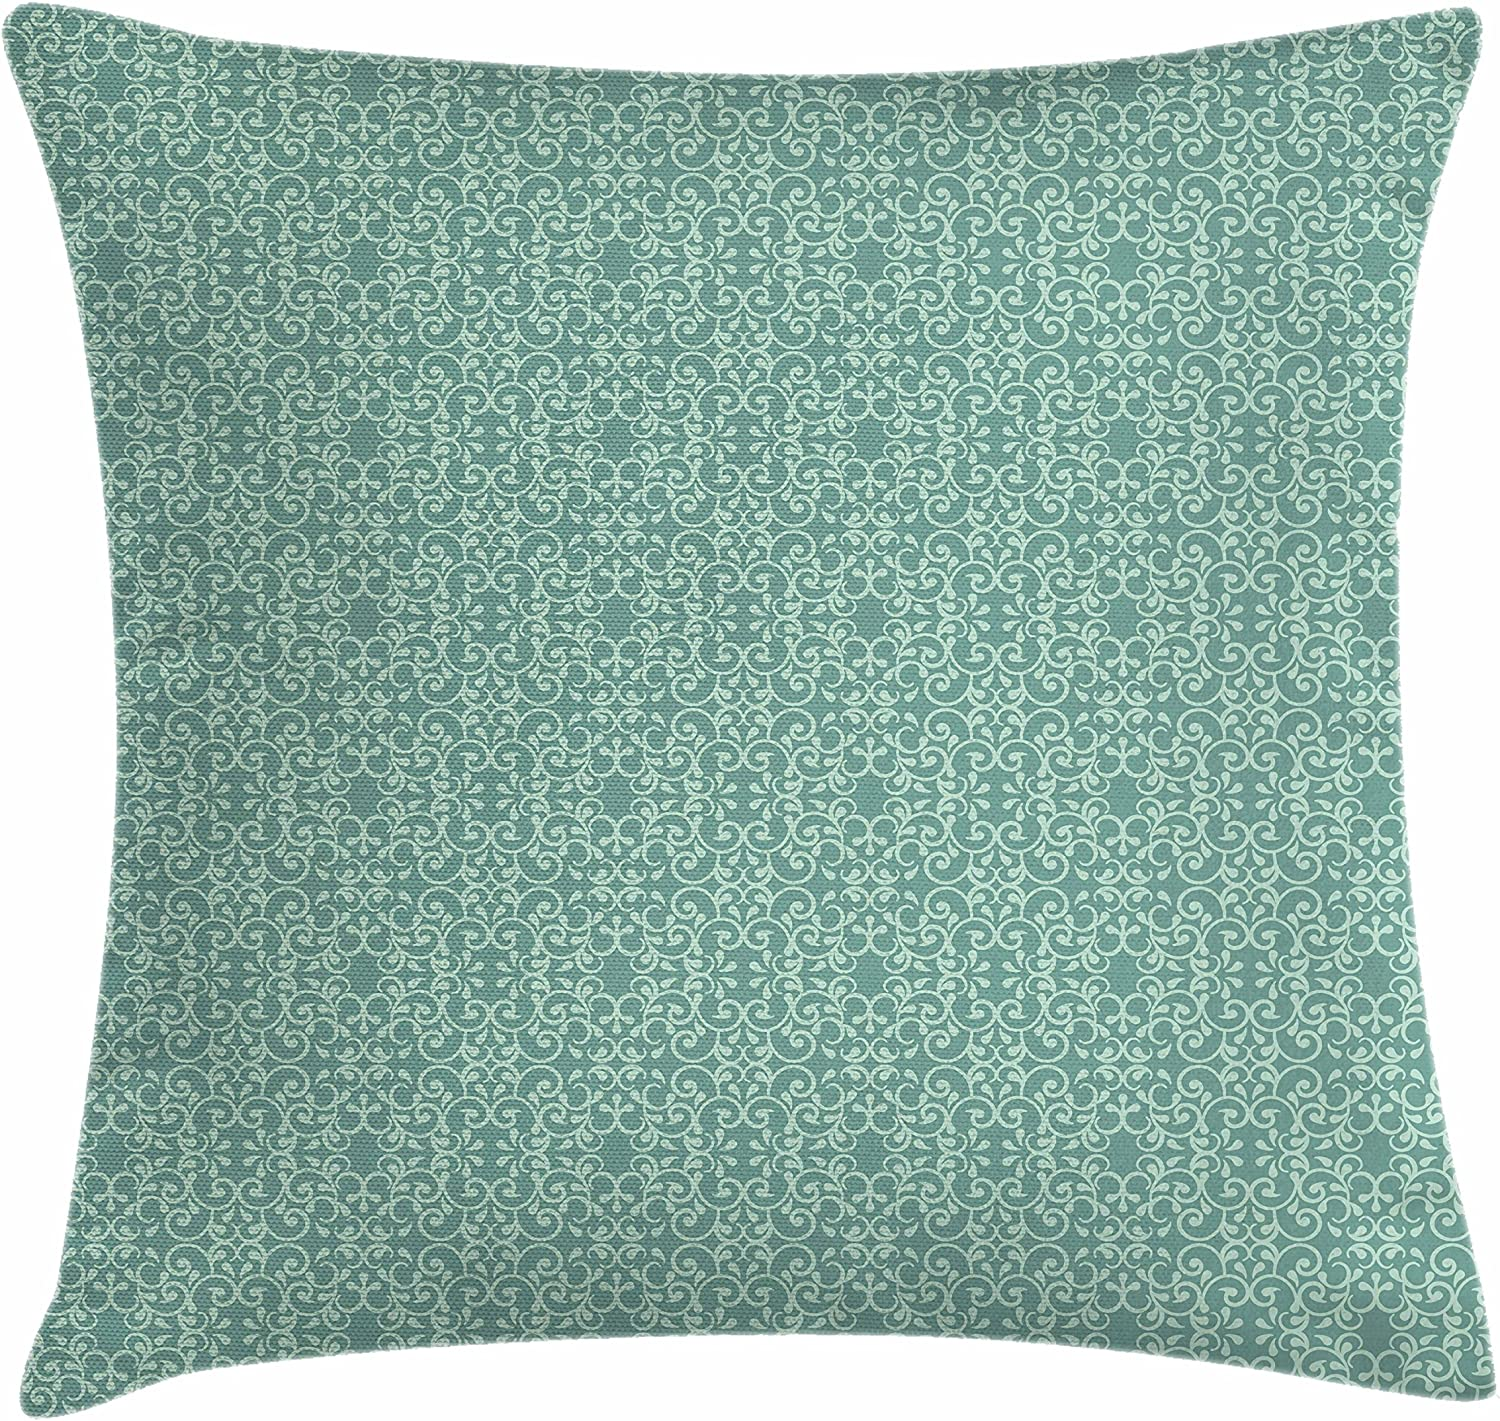 "Ambesonne Green Throw Pillow Cushion Cover, Vintage Style Victorian Garden Pattern Antique Design Old Fashion Ornaments, Decorative Square Accent Pillow Case, 24"" X 24"", Turquoise Seafoam"